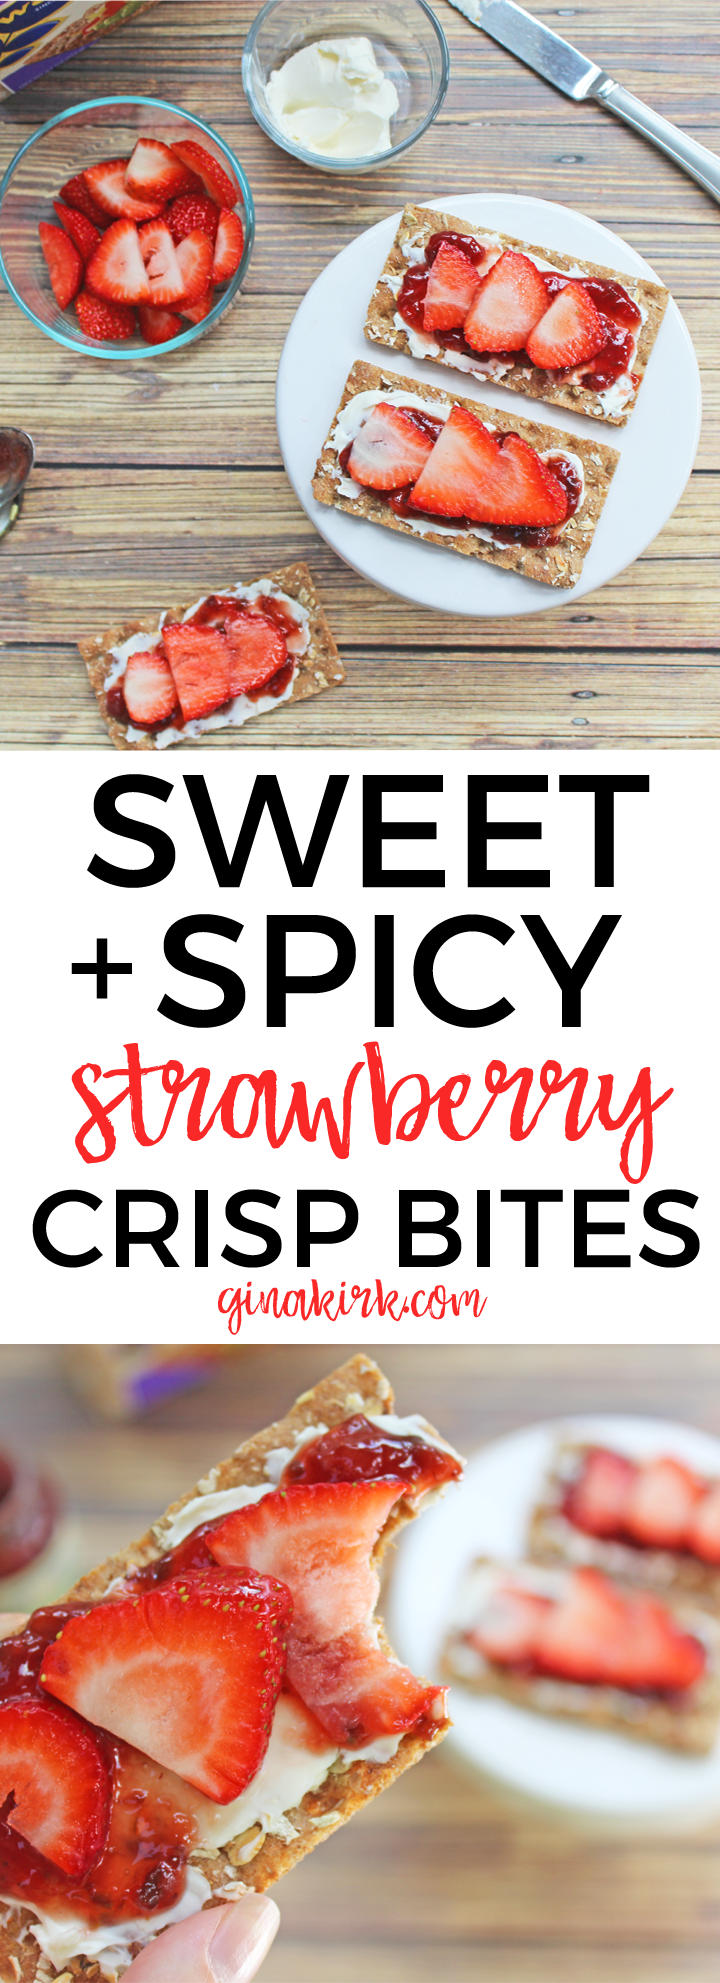 Sweet & Spicy Strawberry Cracker Bites | The perfect EASY no bake party appetizer or anytime snack! | GinaKirk.com